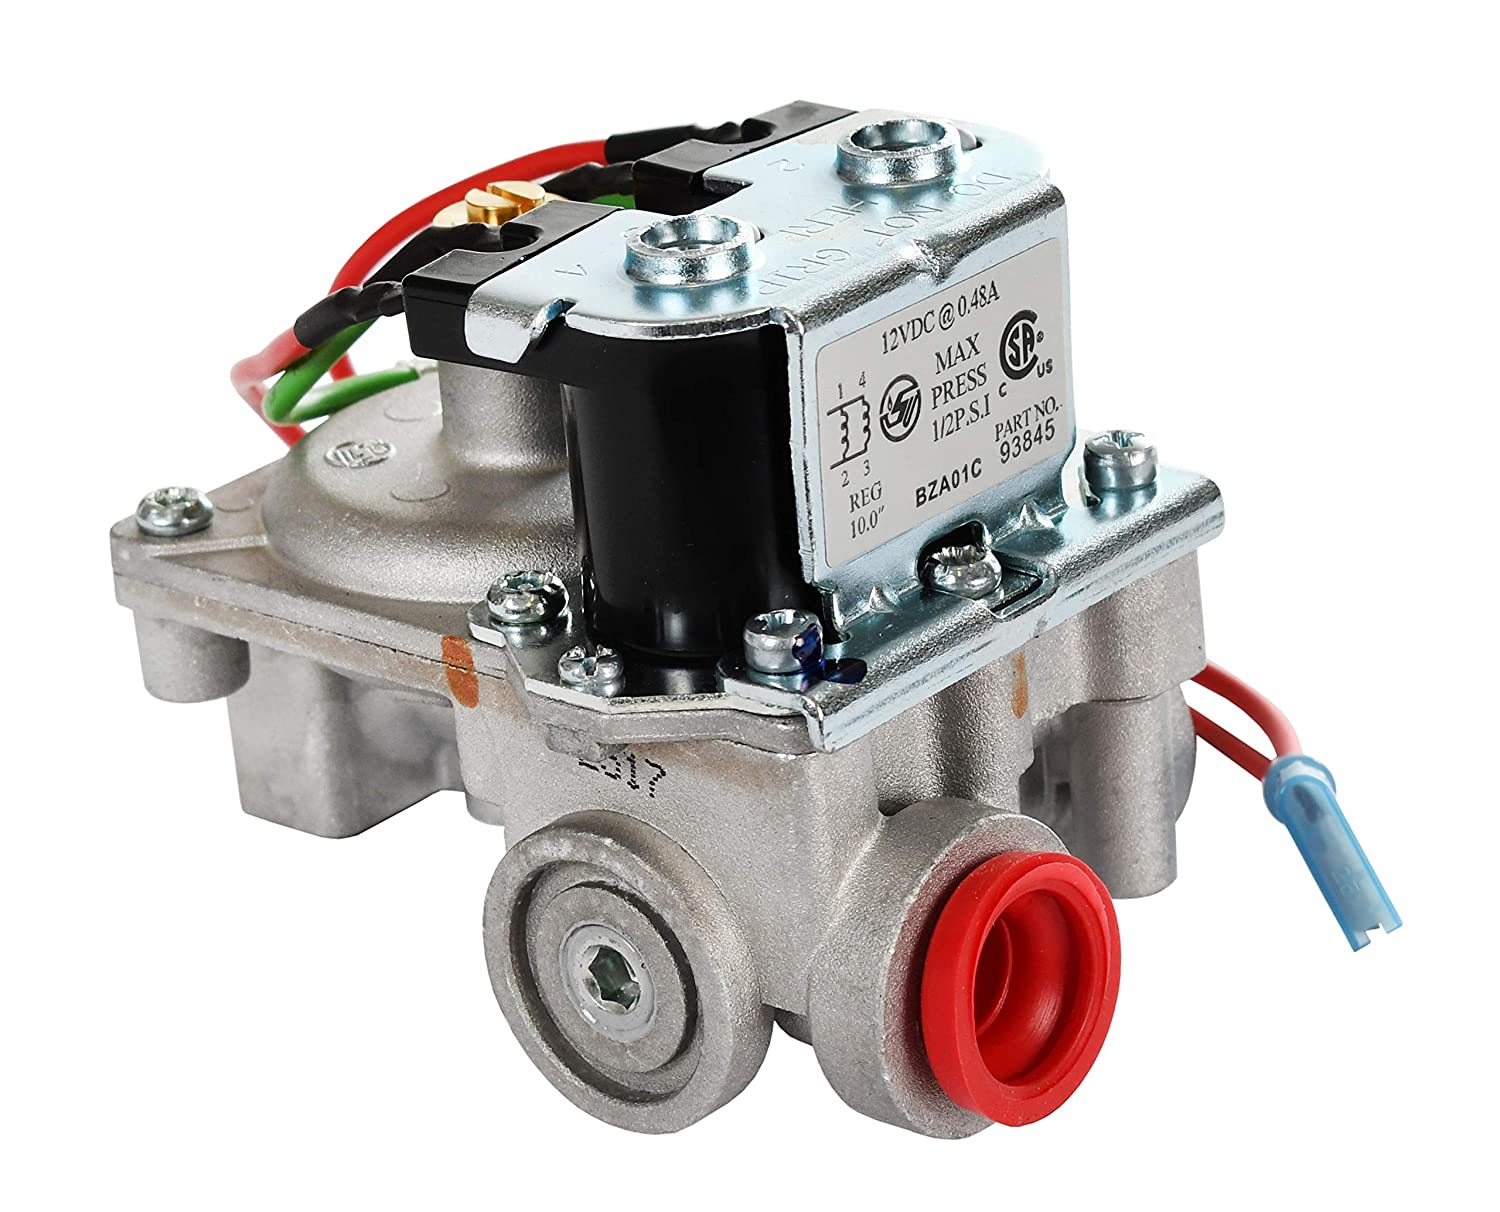 Atwood 93844 Water Heater Gas Valve Automotive Troubleshooting Dual Solenoid Circuit Valves More